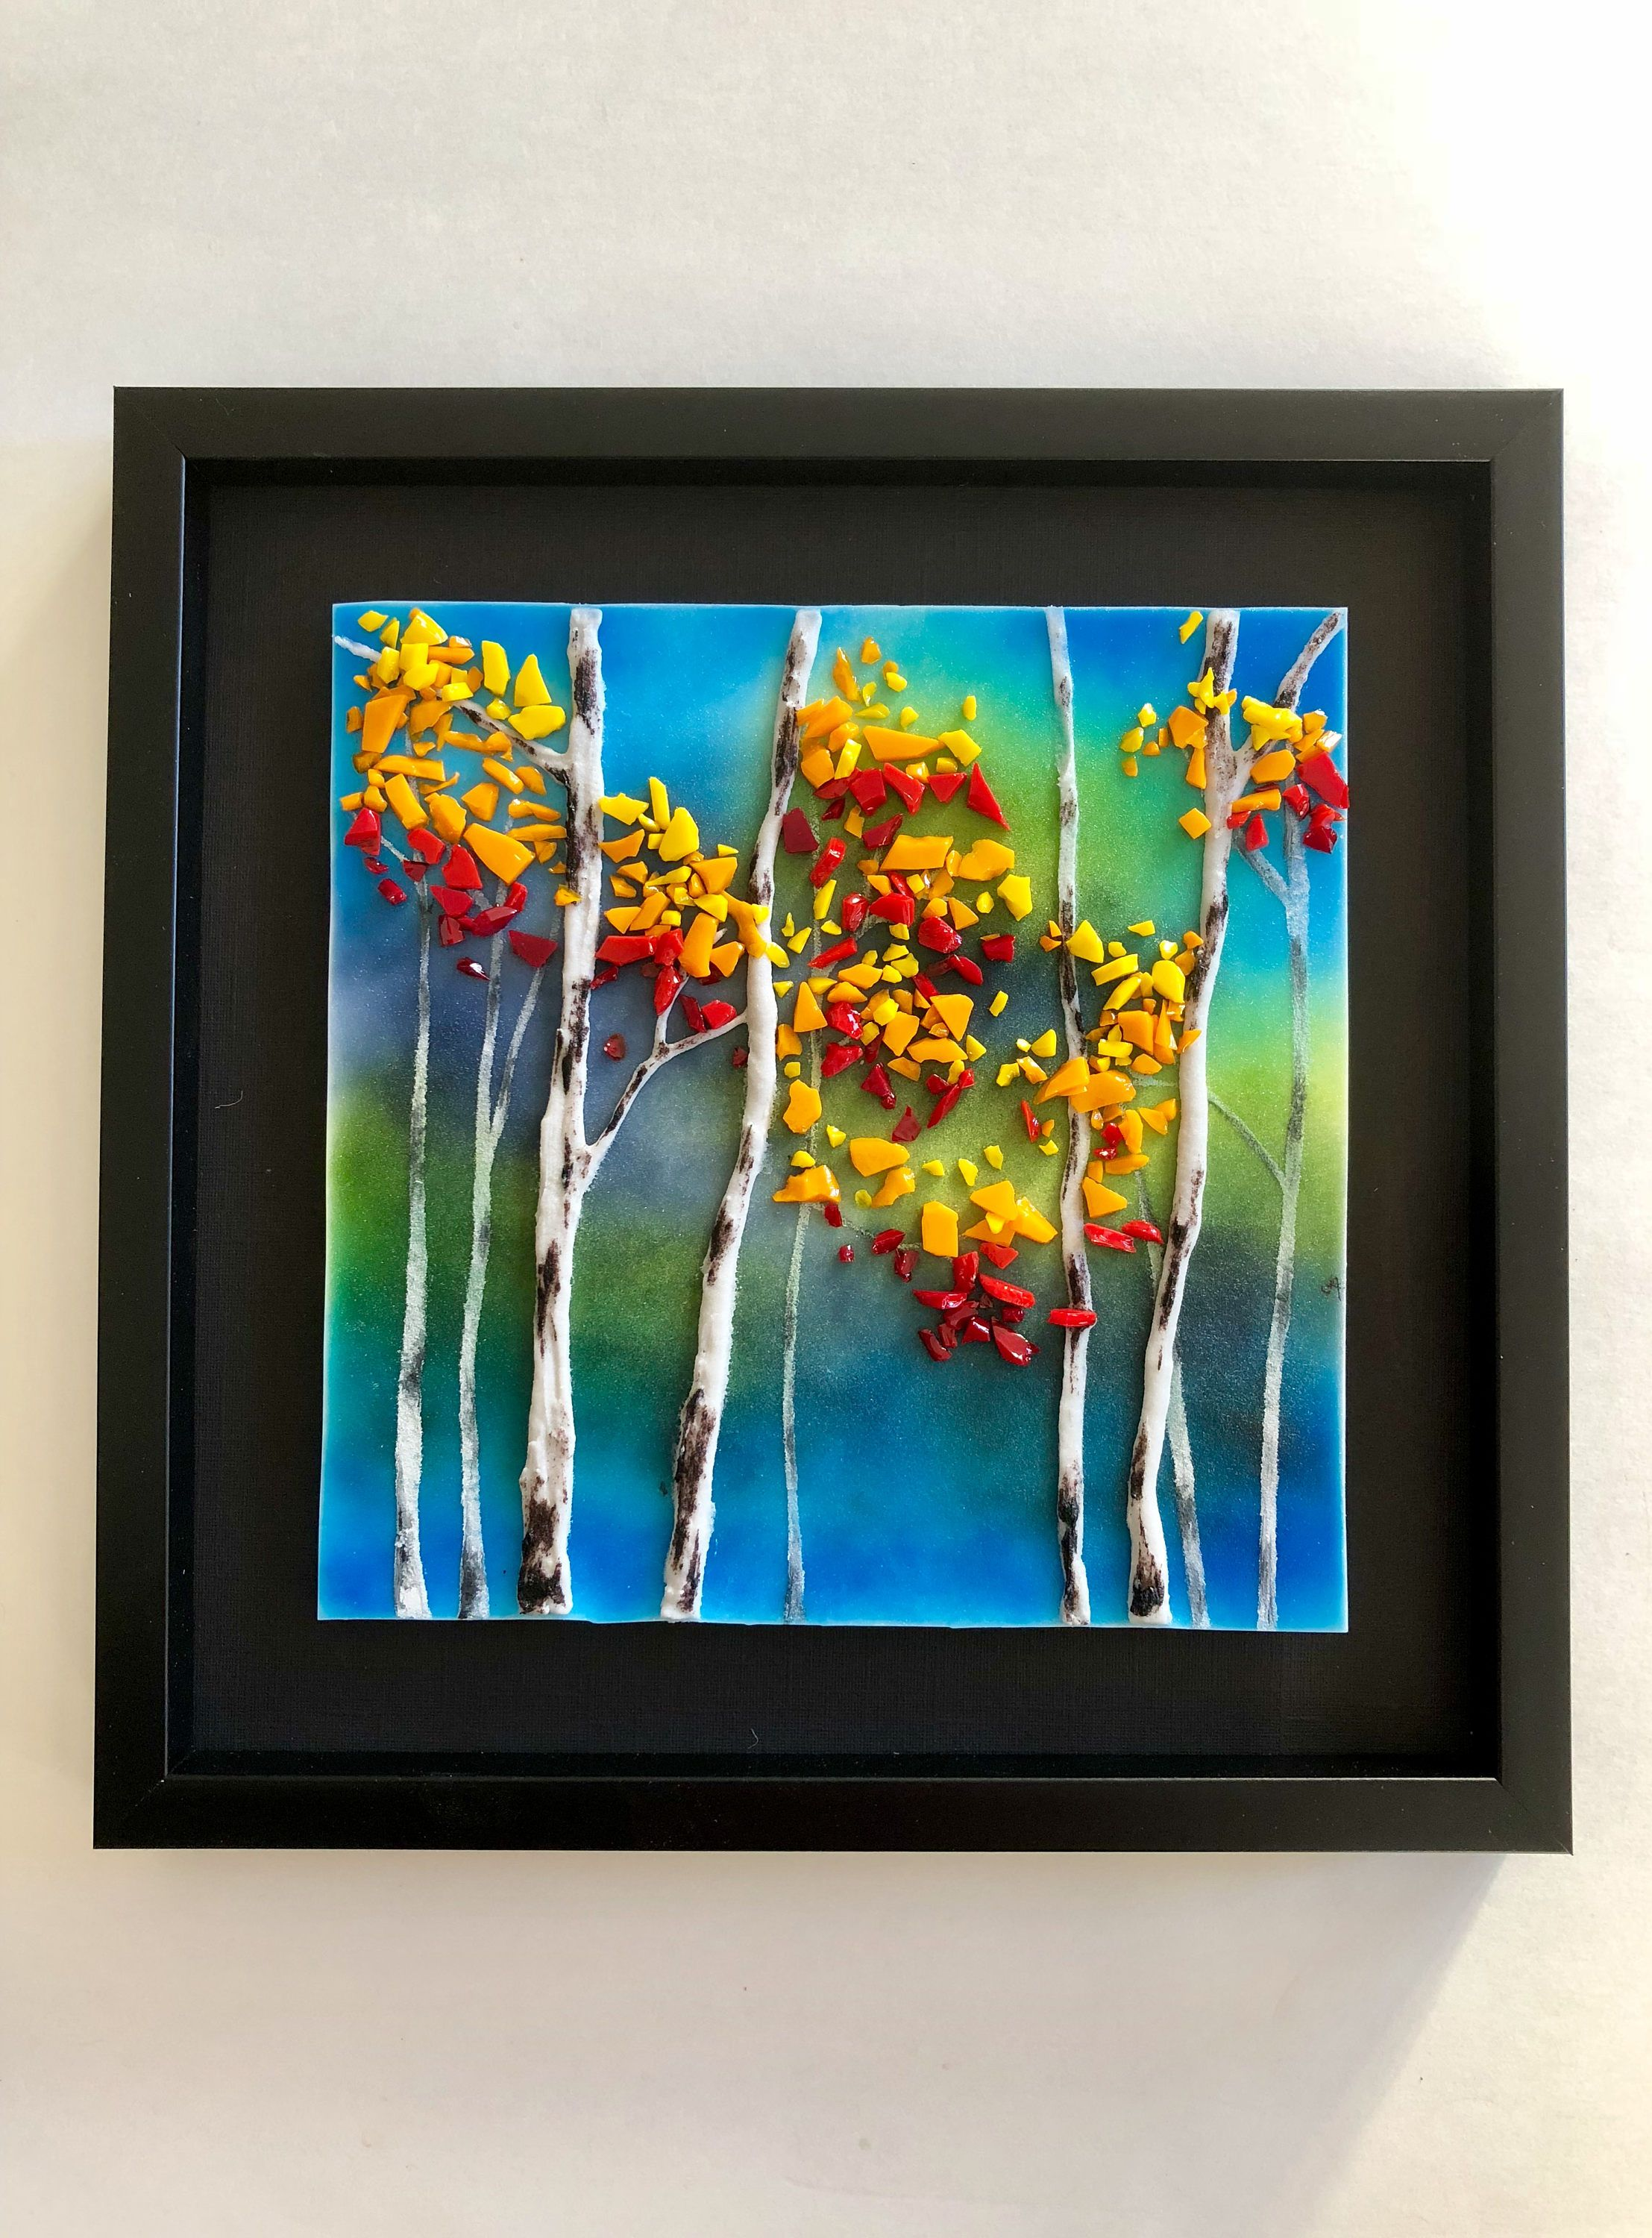 Fused Gl Handmade Aspen Trees Wall Panel Art